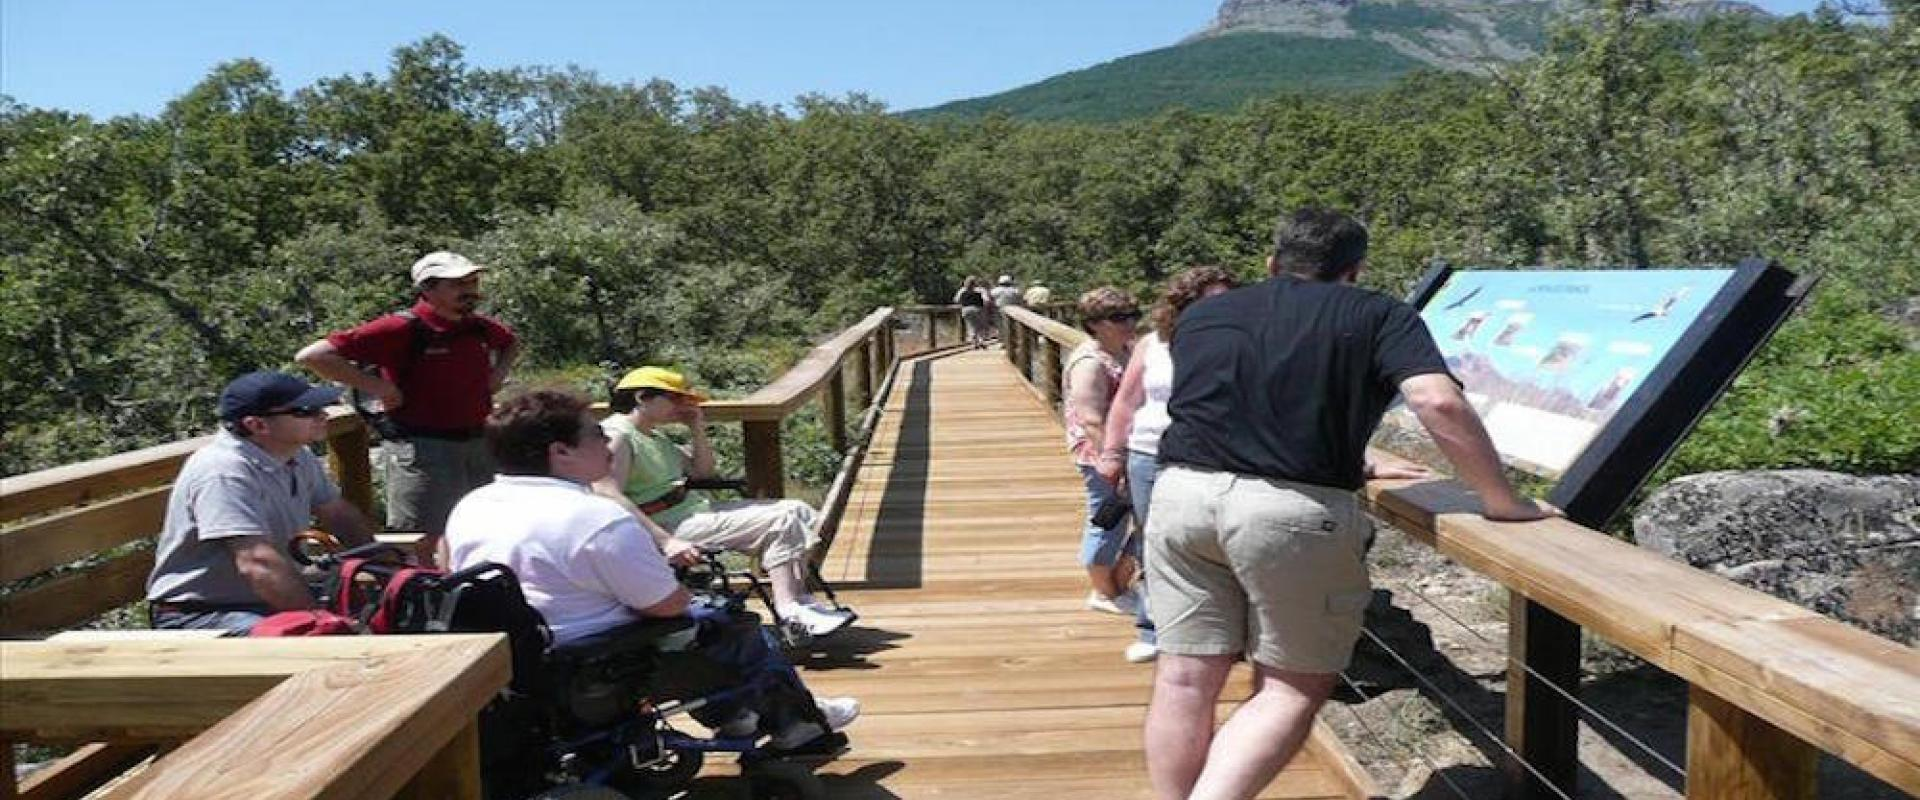 Accesible Hiking in the Natural Park Las Batuecas – Sierra de Francia